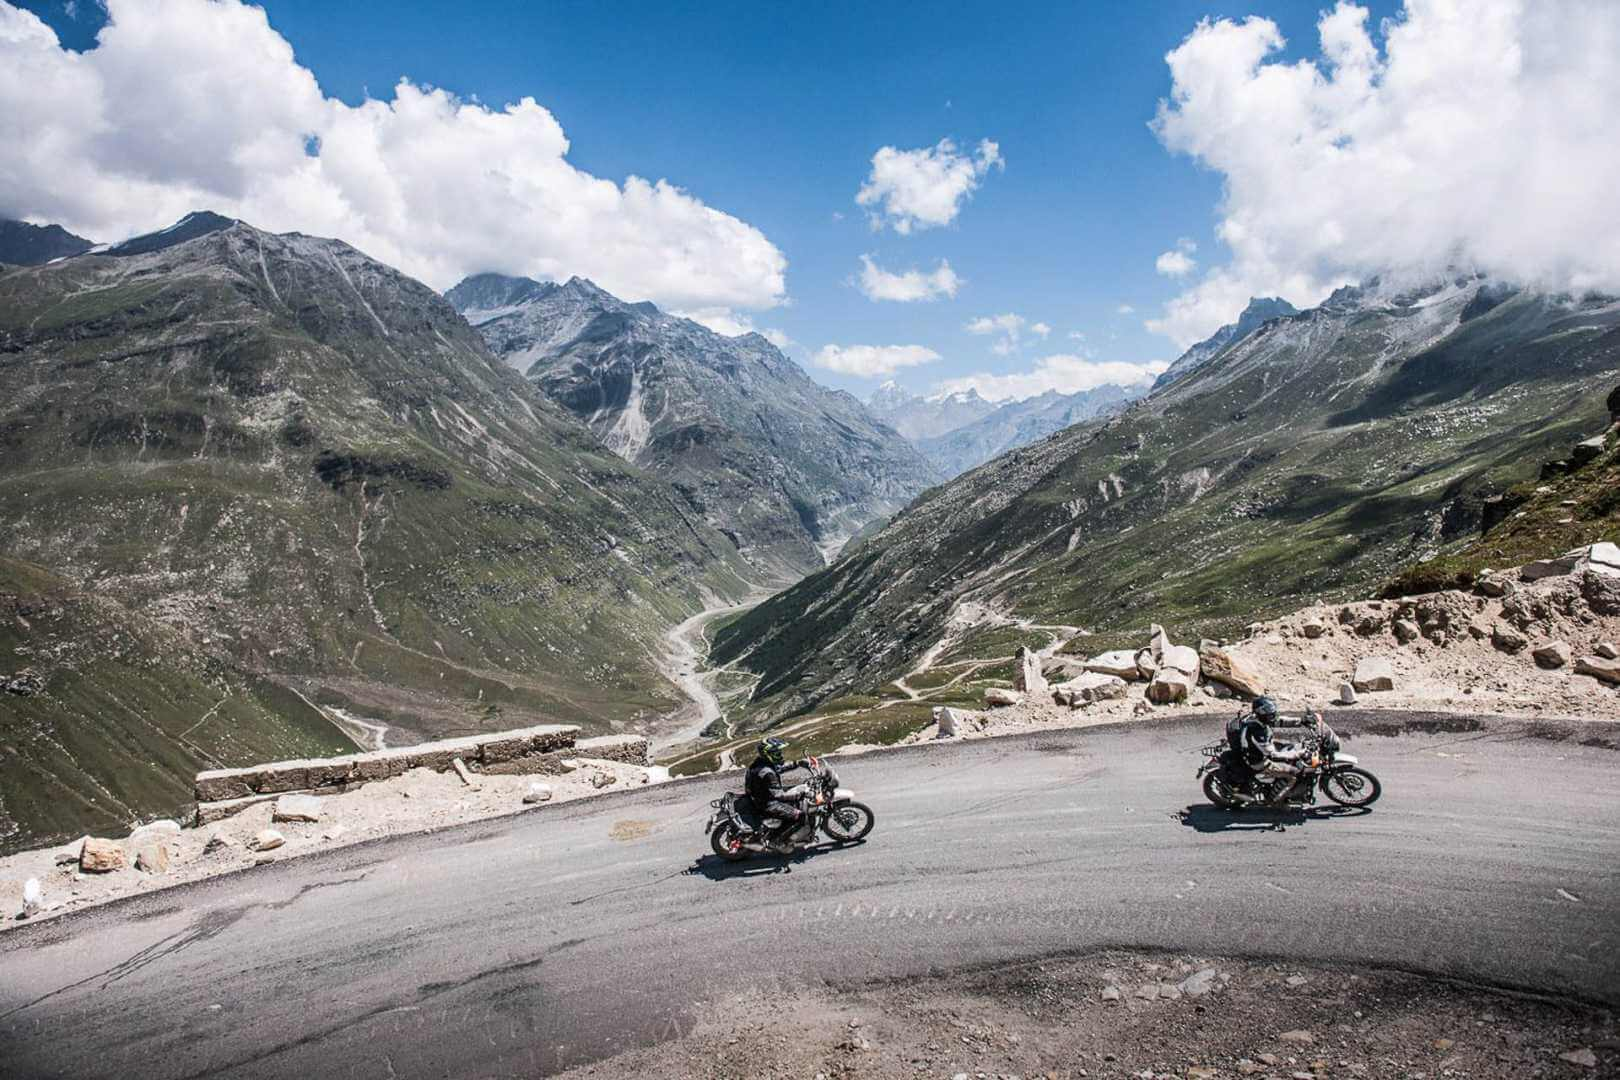 Motorcyclists riding up the Himalayas